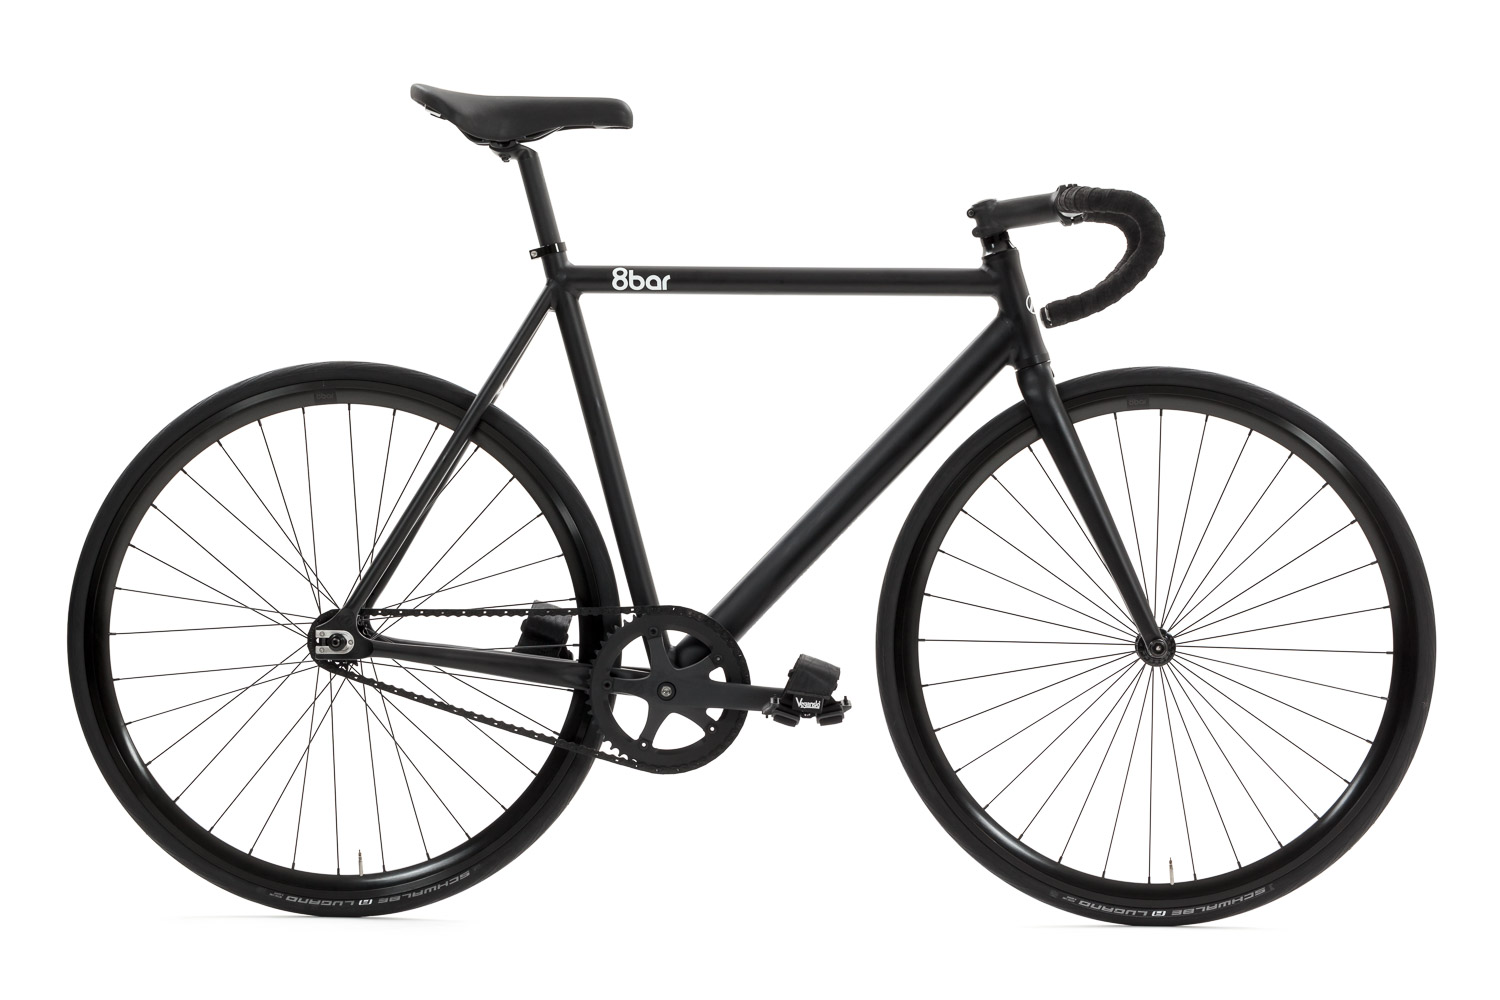 8bar fhain comp black drop fixie fixed gear 1 - FHAIN V3 CRIT - PRO